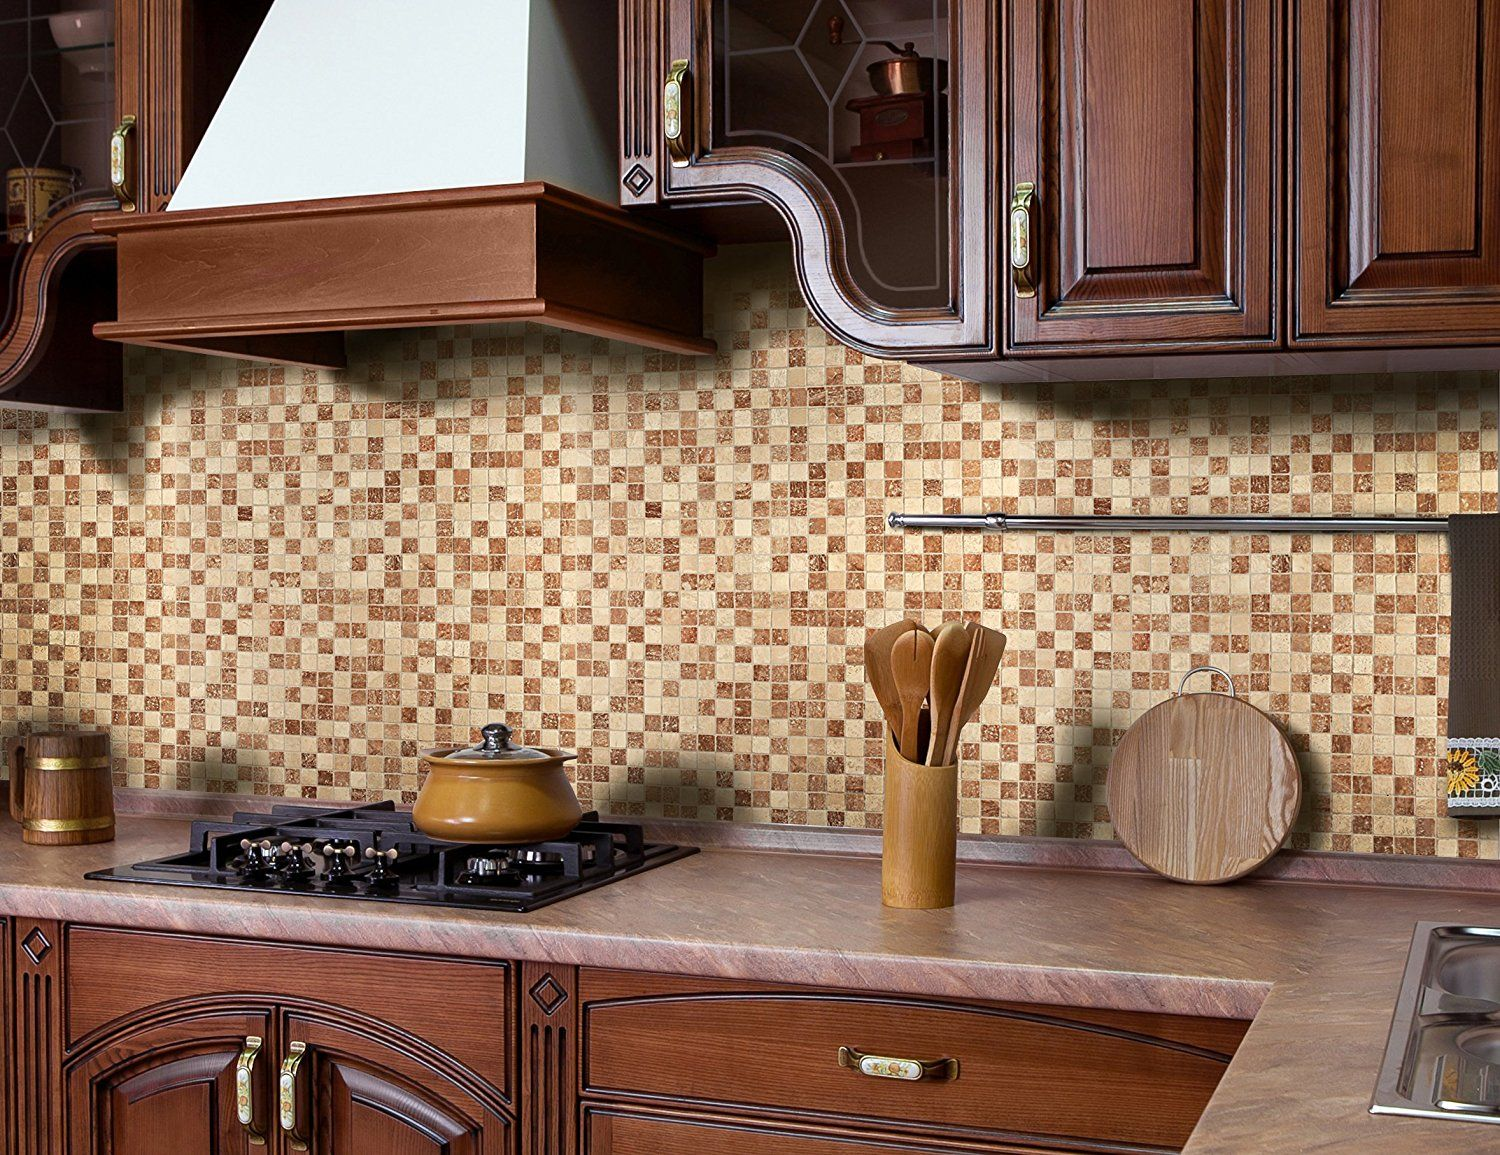 Amazon Instant Mosaic 6 04 104 Peel n stick Natural Stone